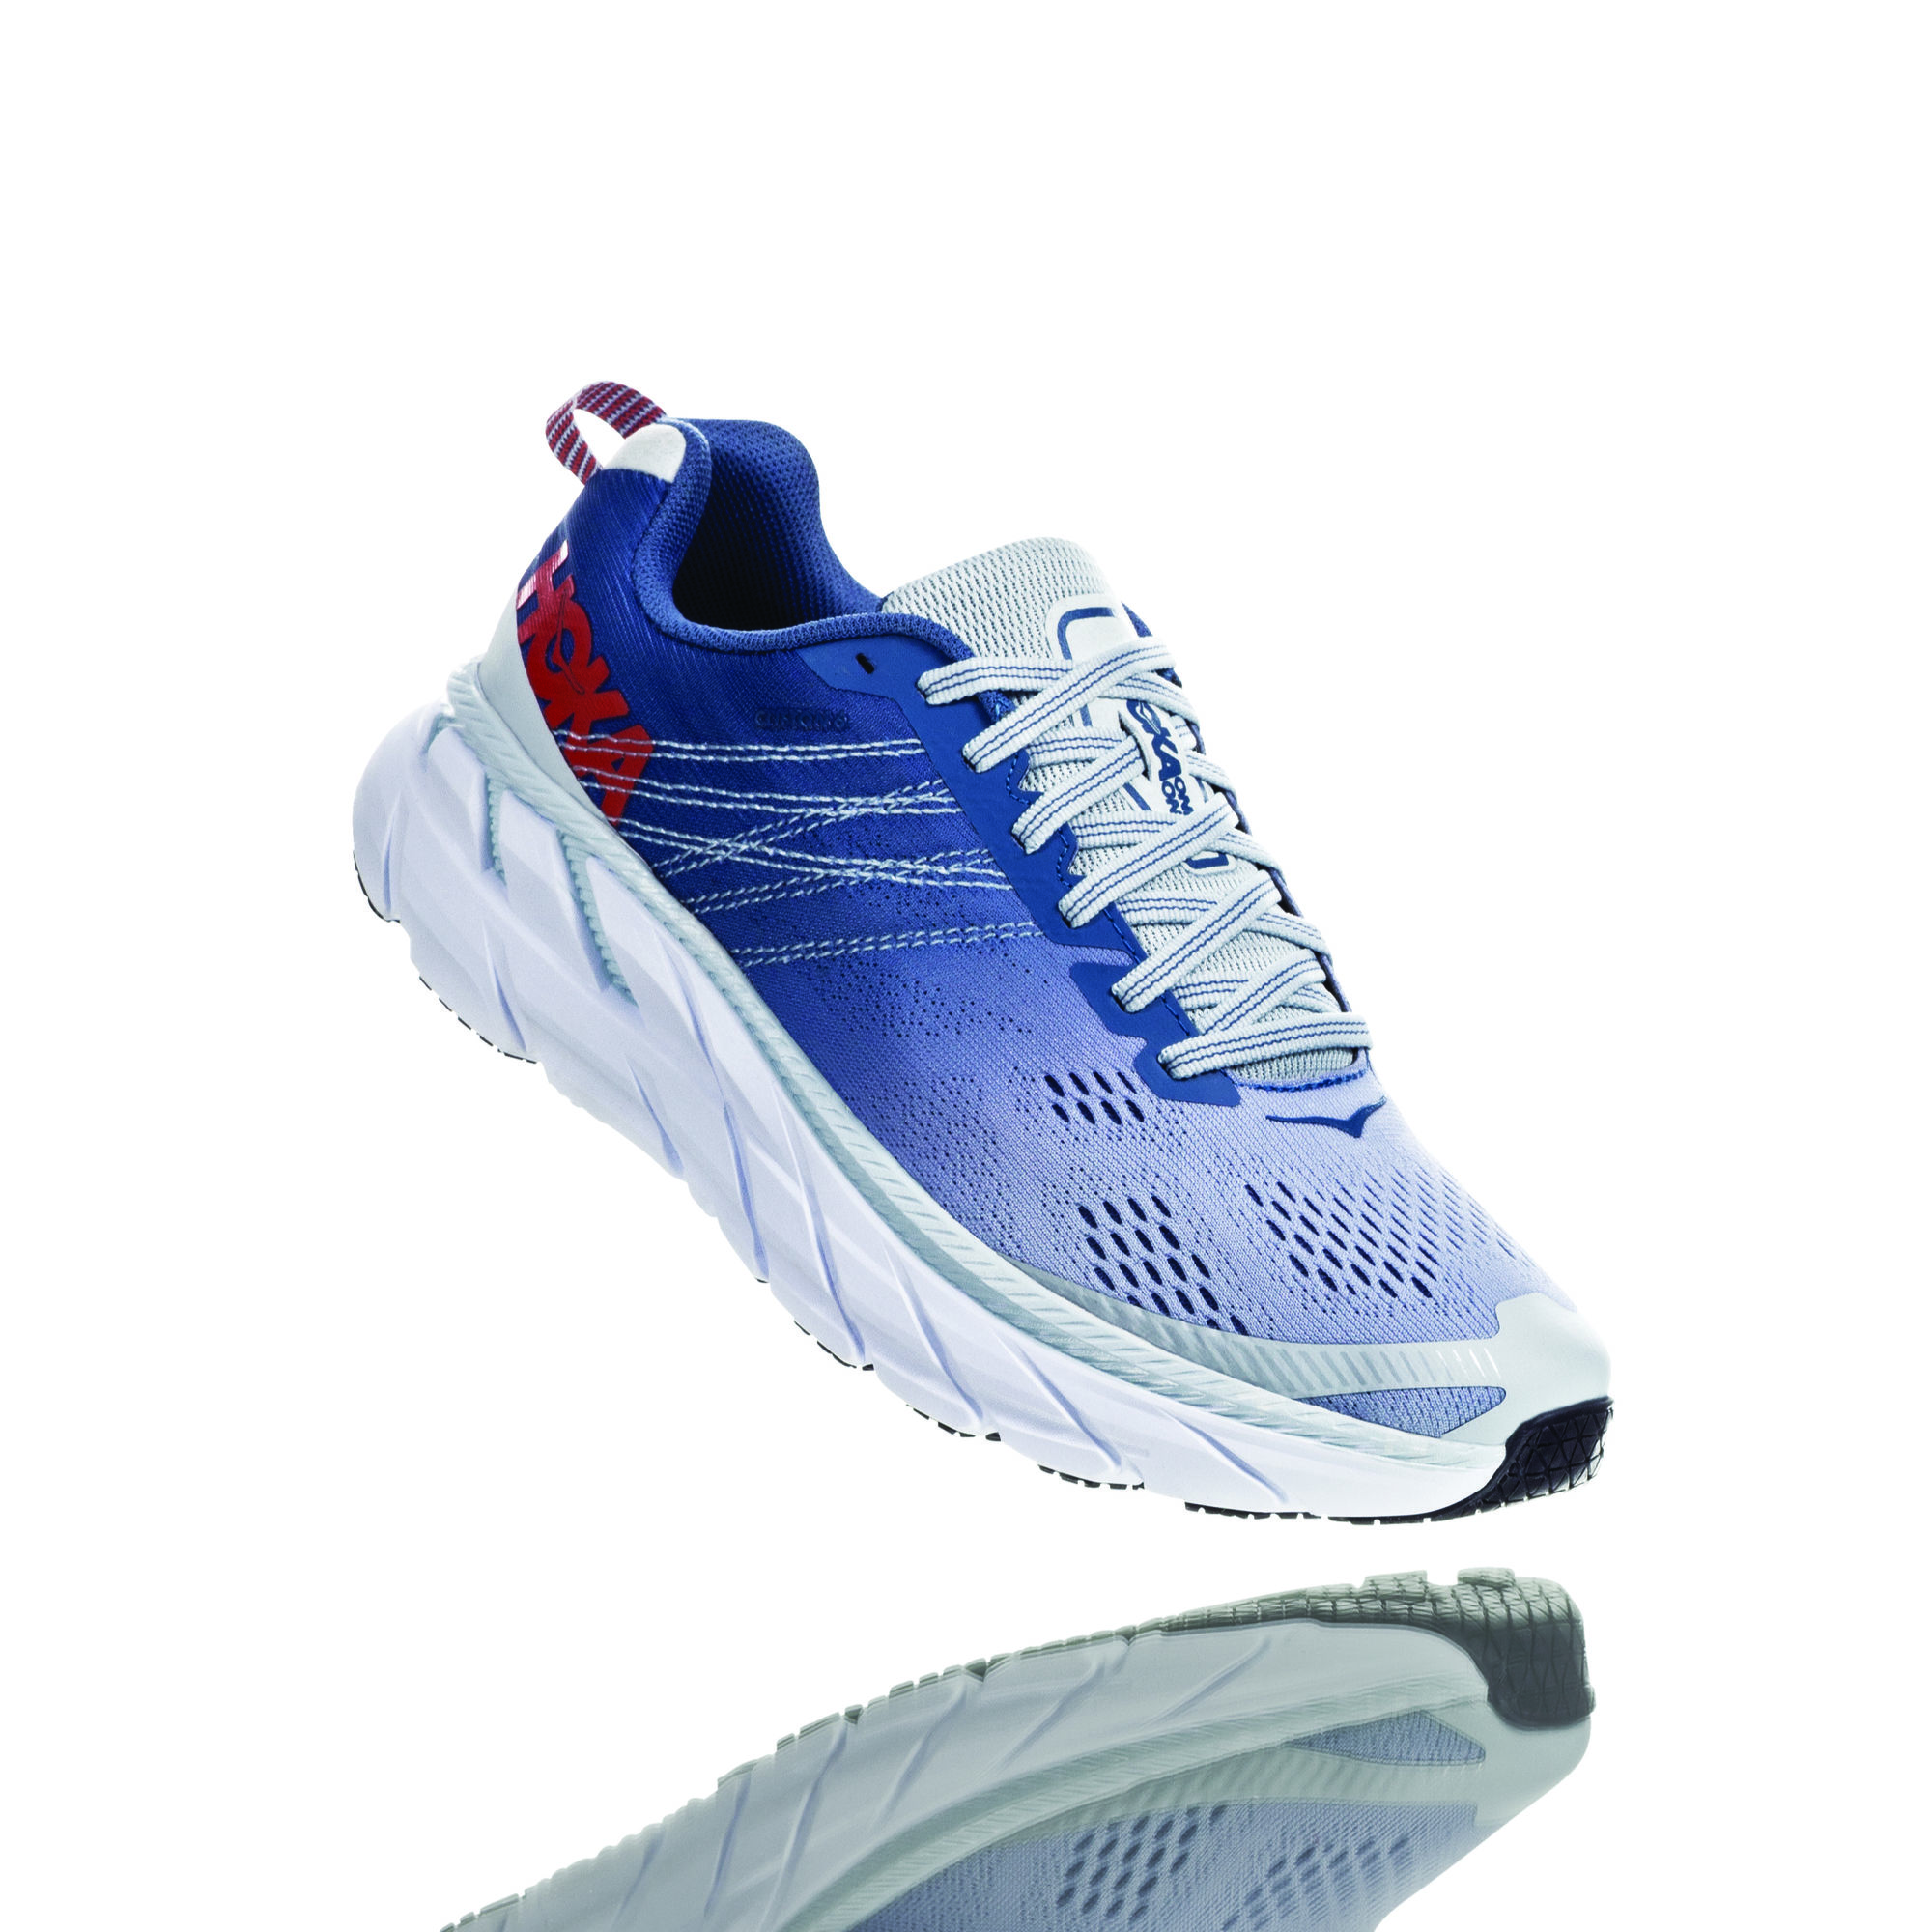 Hoka One One Lady Clifton 6 in Plein Air Moonlight Blue